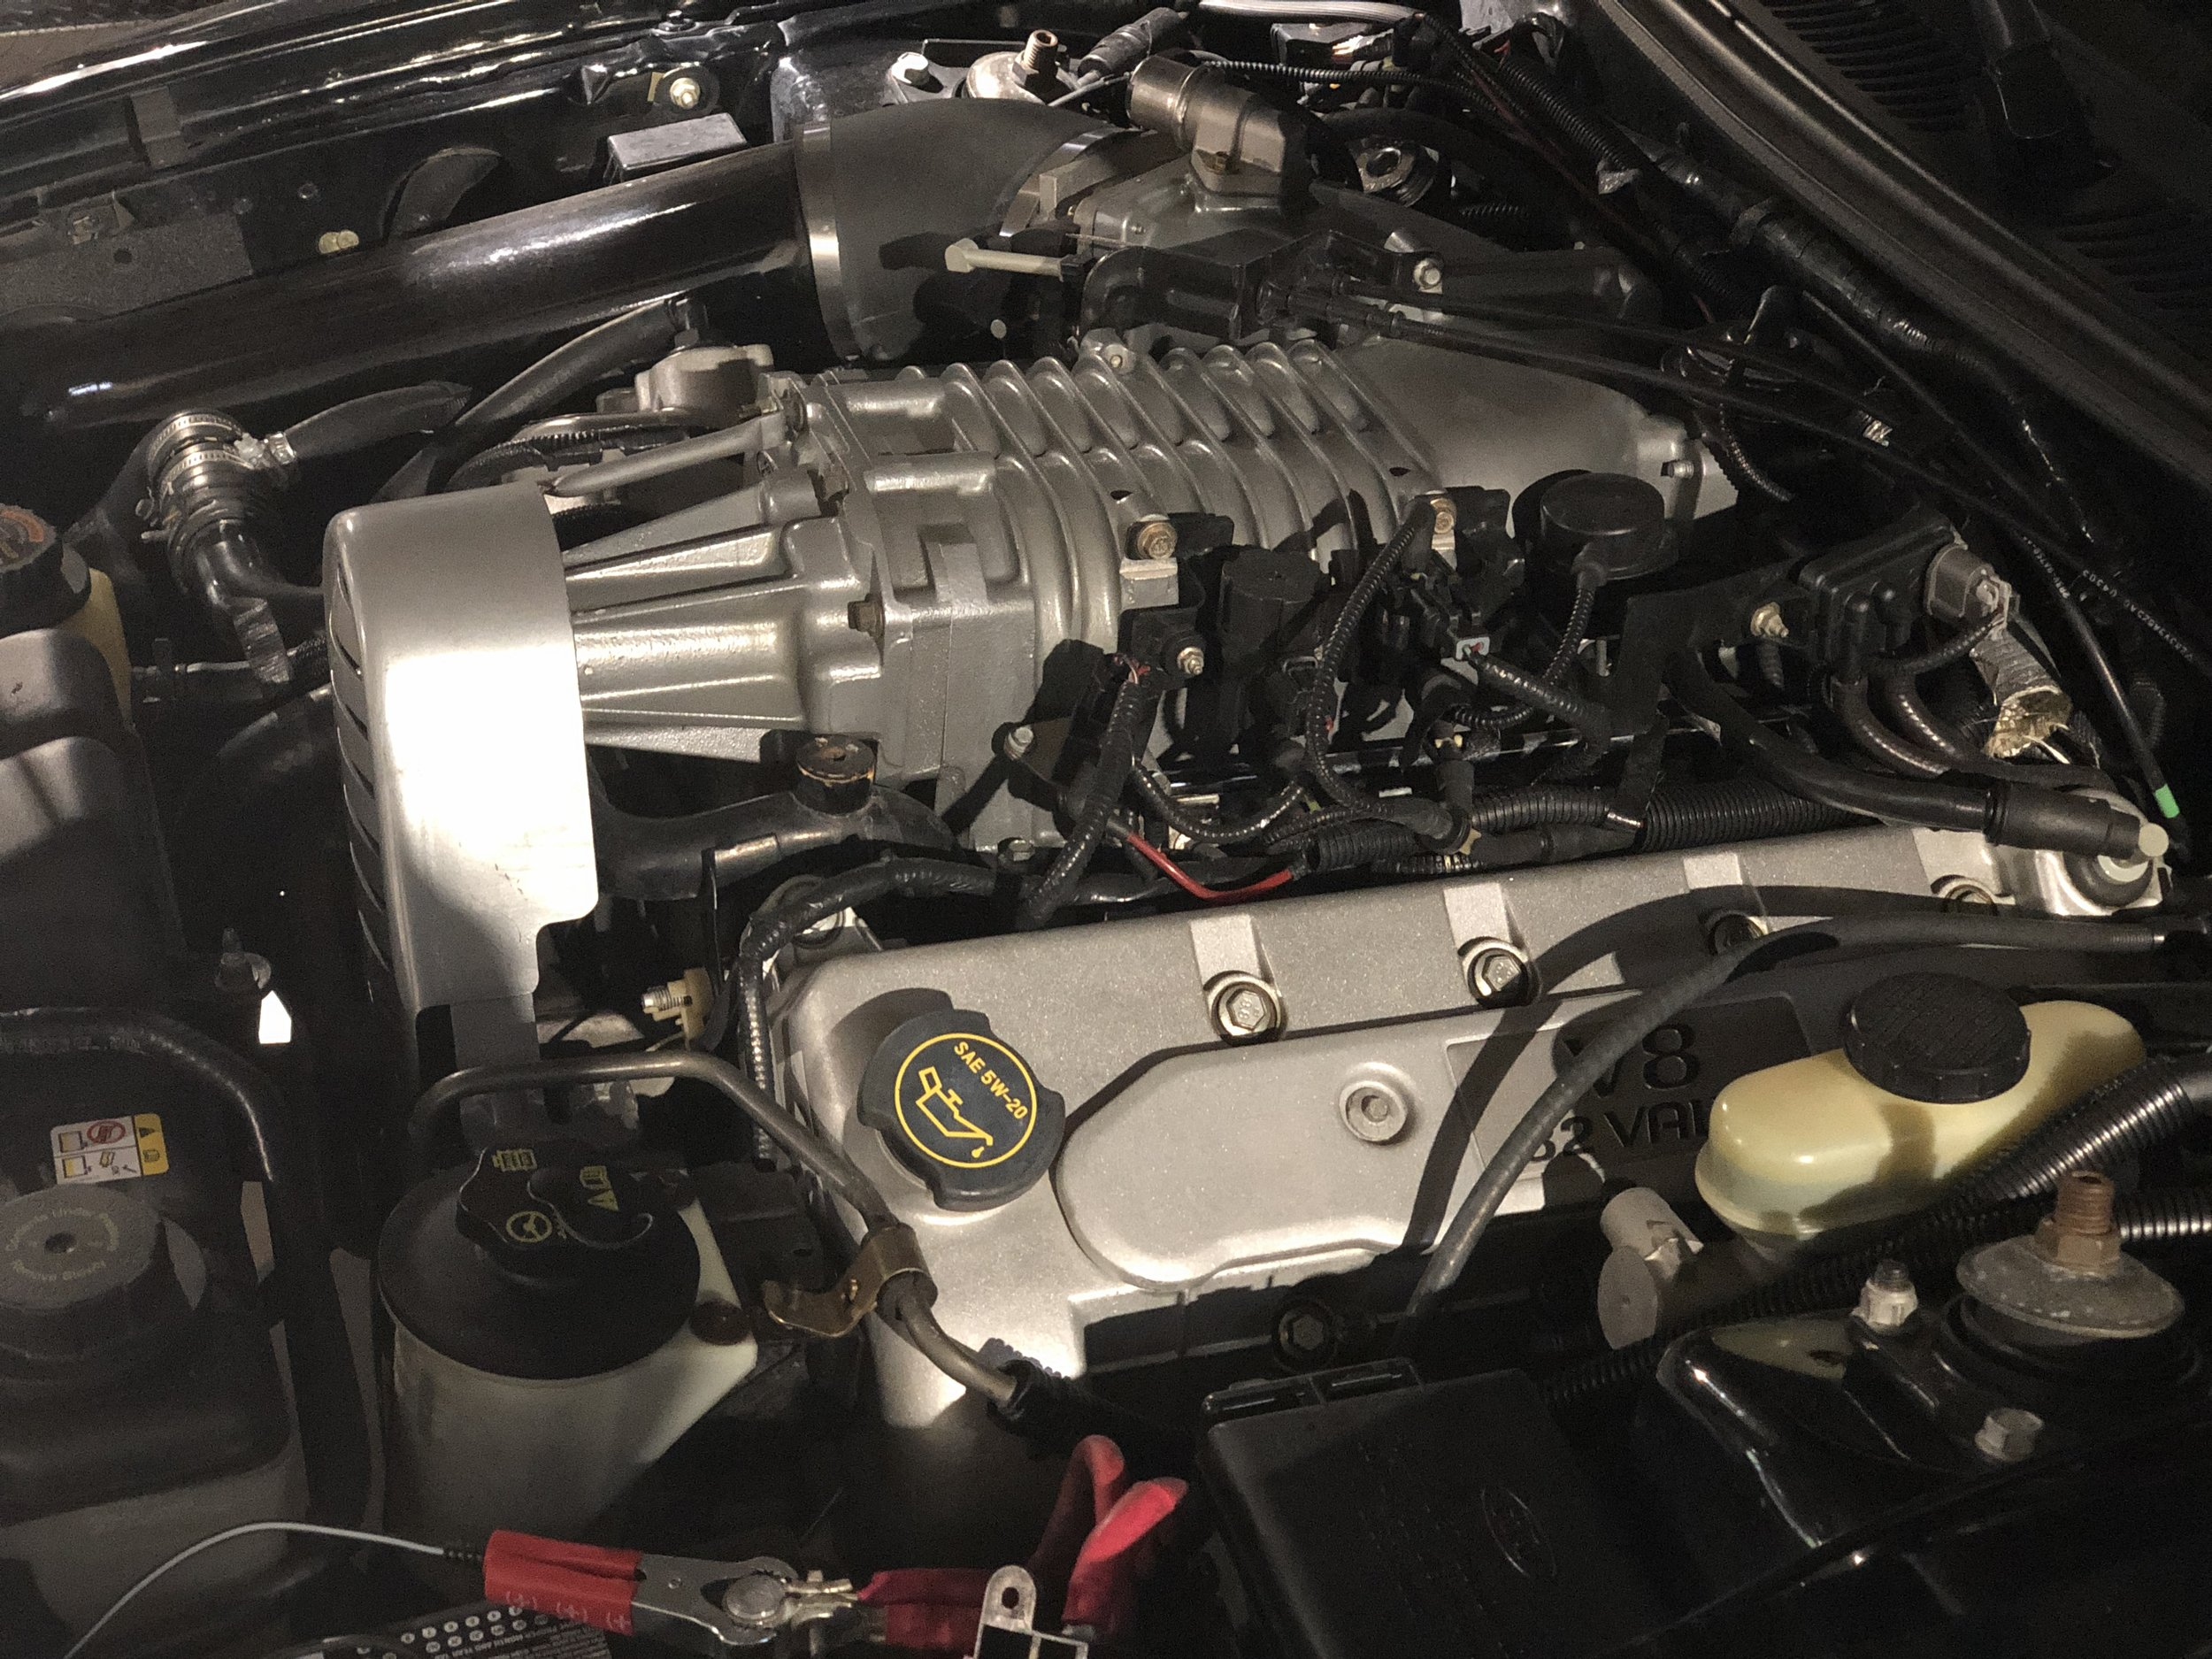 2003 Ford Mustang Svt Cobra Car Open Engine